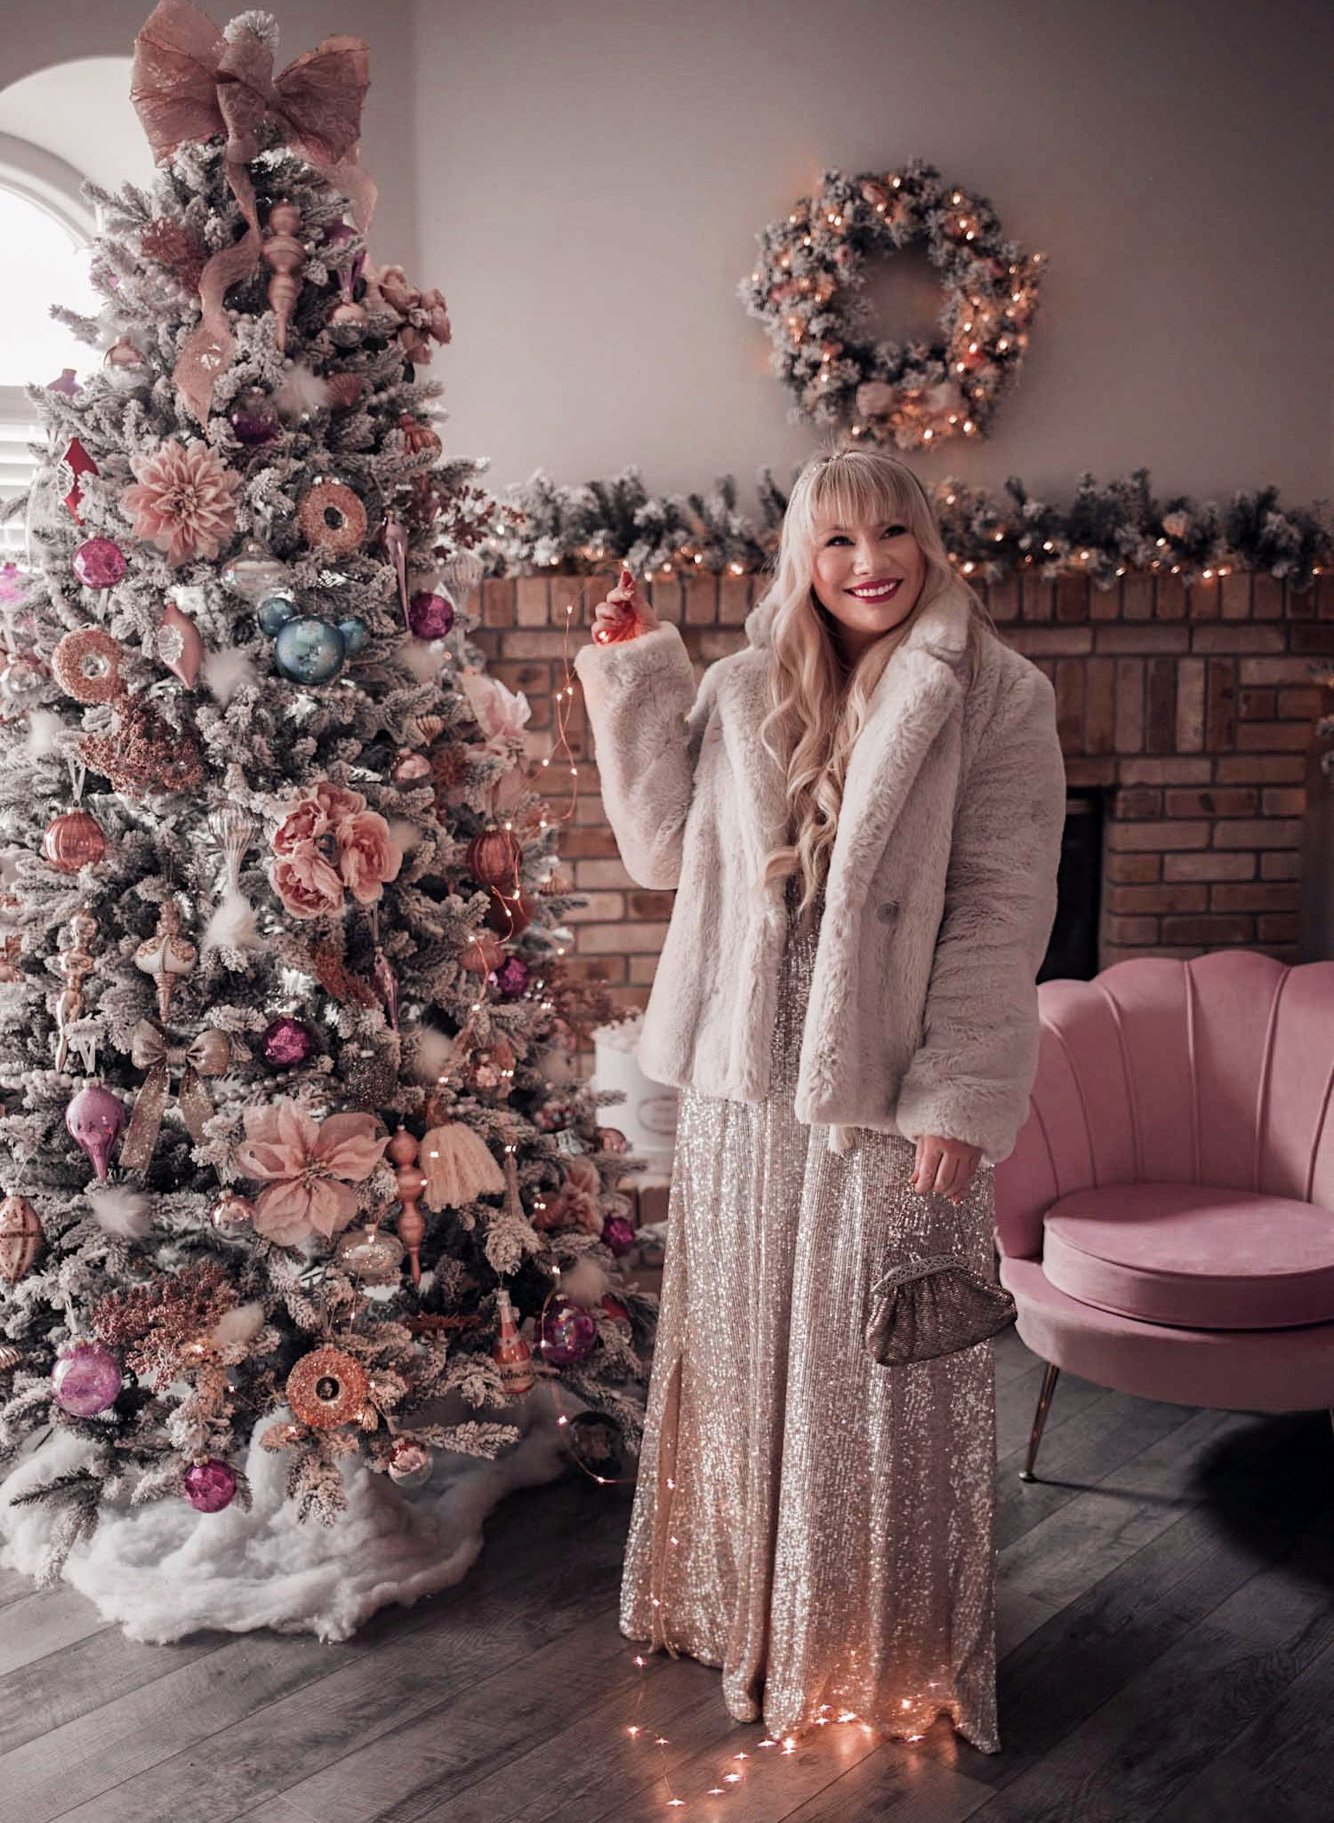 Fashion Blogger Elizabeth Hugen of Lizzie in Lace styles a sparkly silver dress and faux fur coat while reflecting on 2020